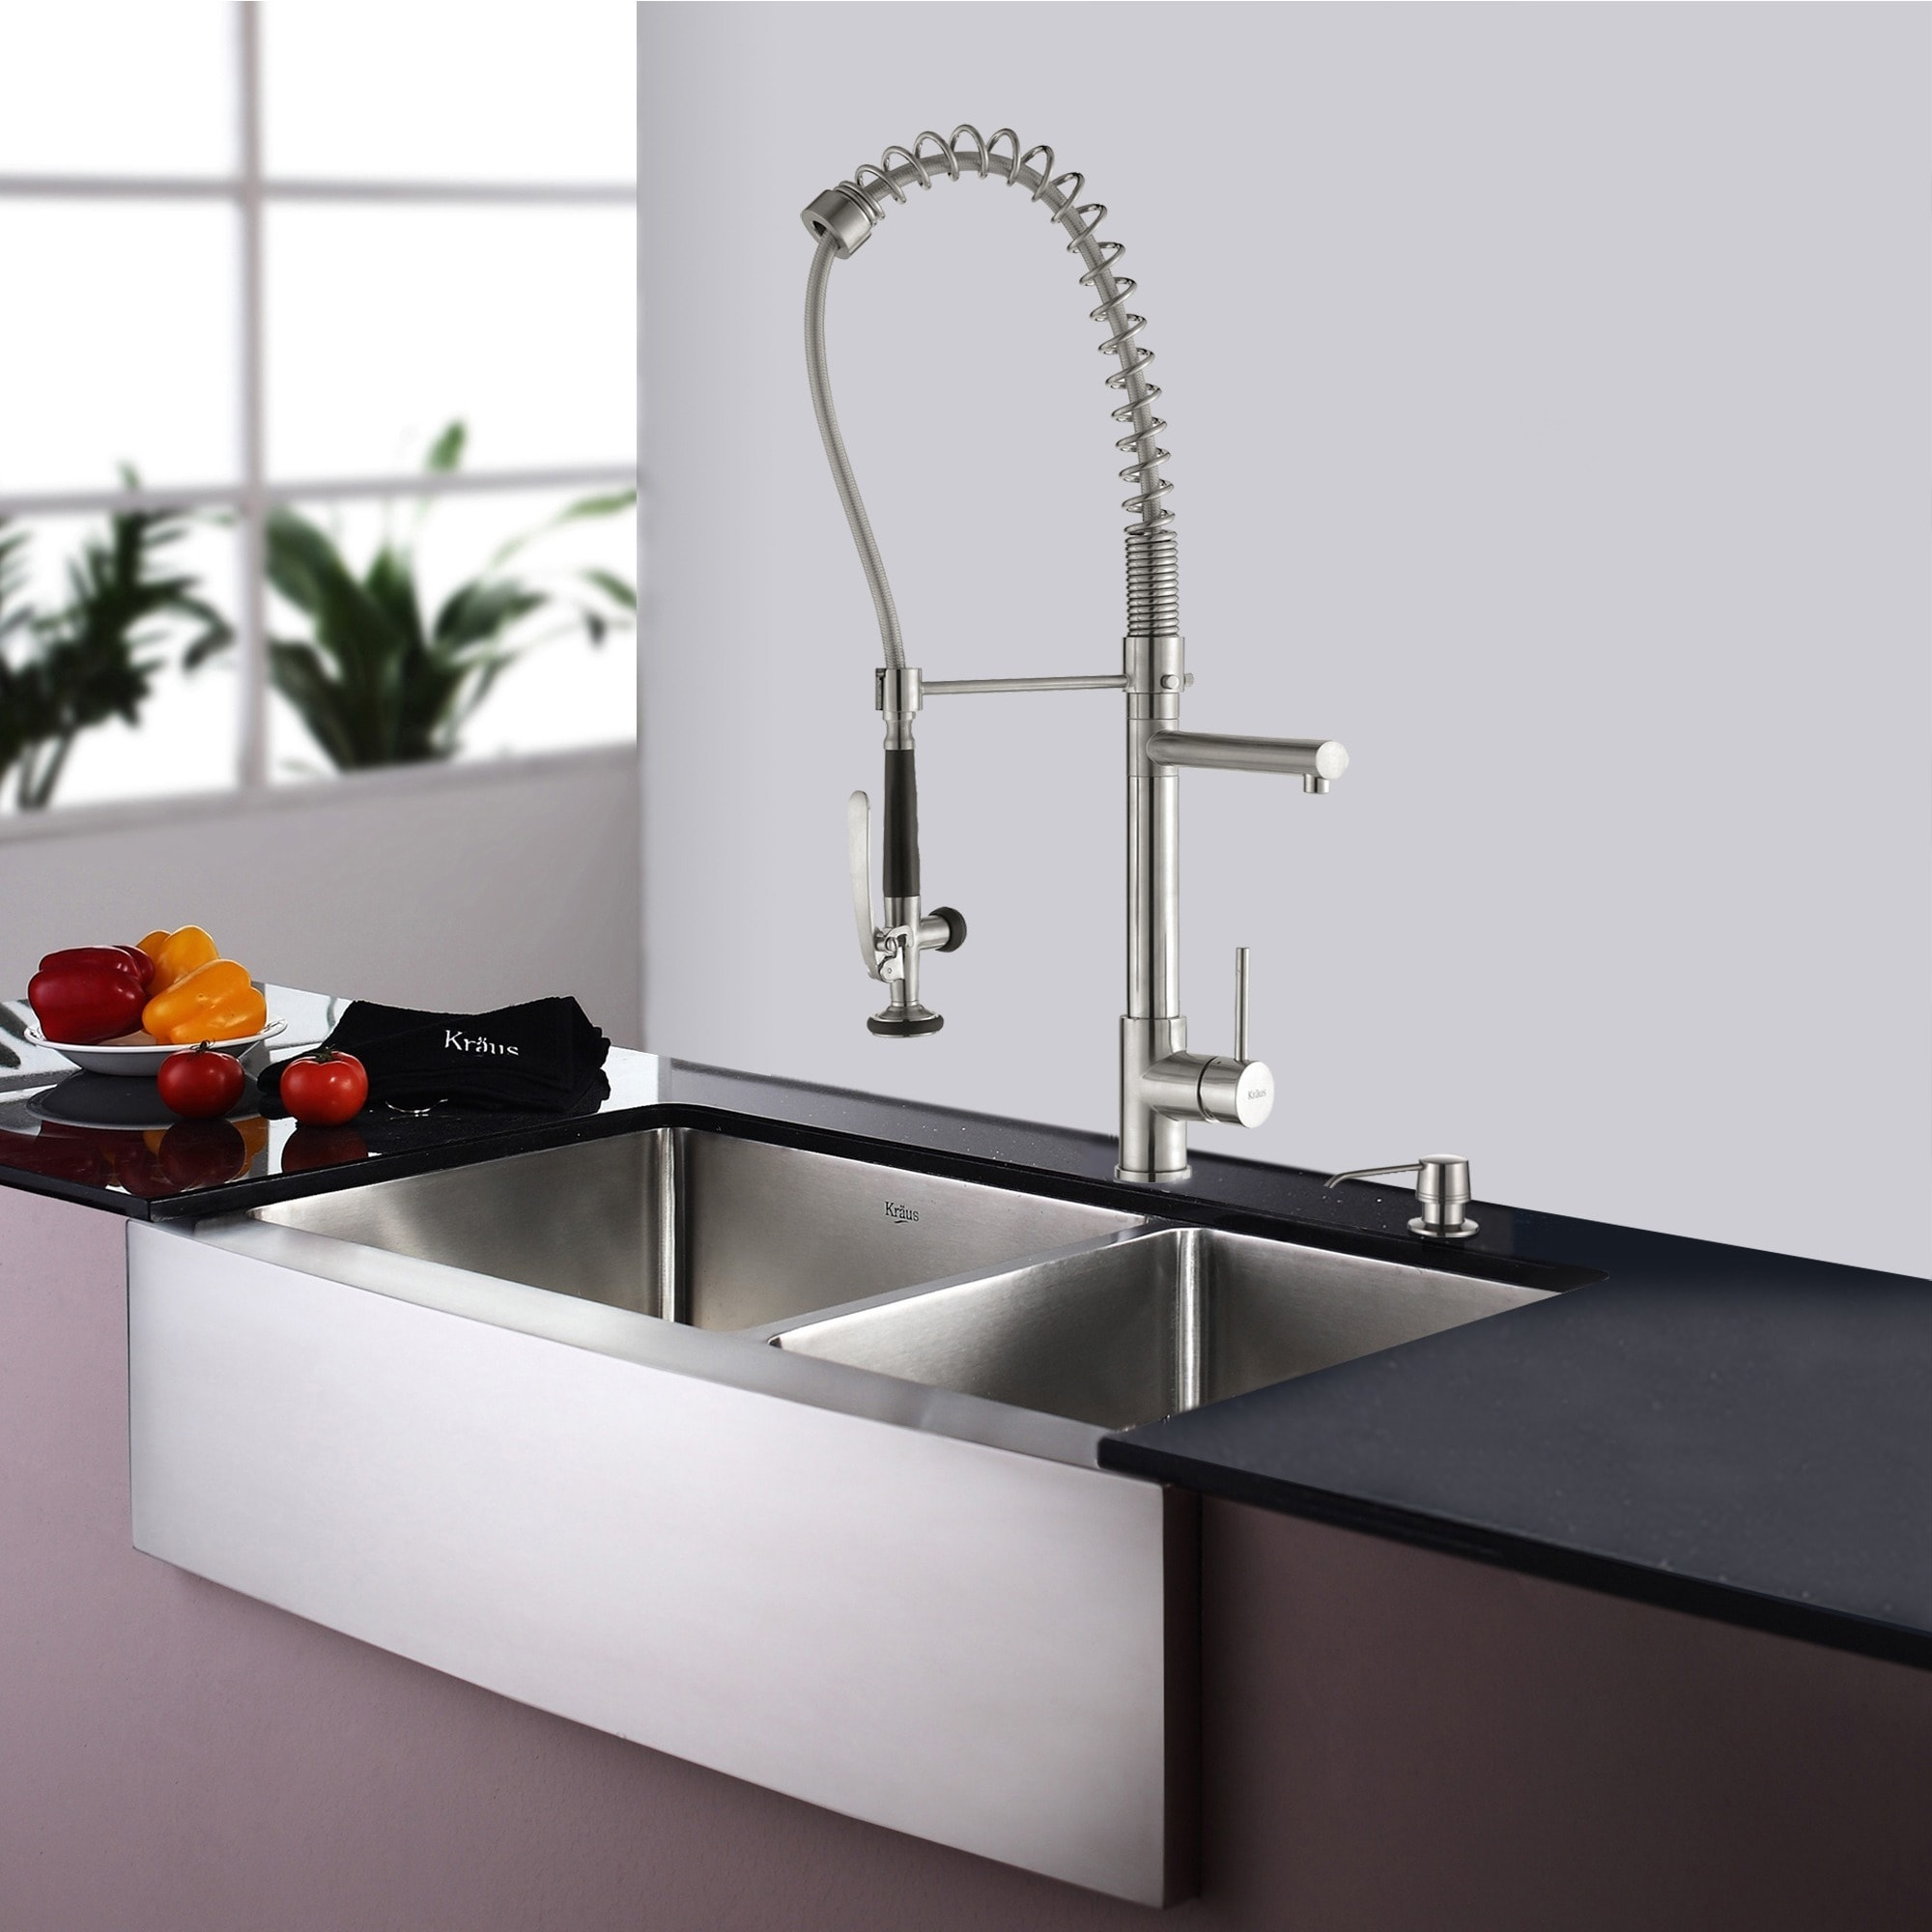 KRAUS 33 Inch Farmhouse Double Bowl Stainless Steel Kitchen Sink ...